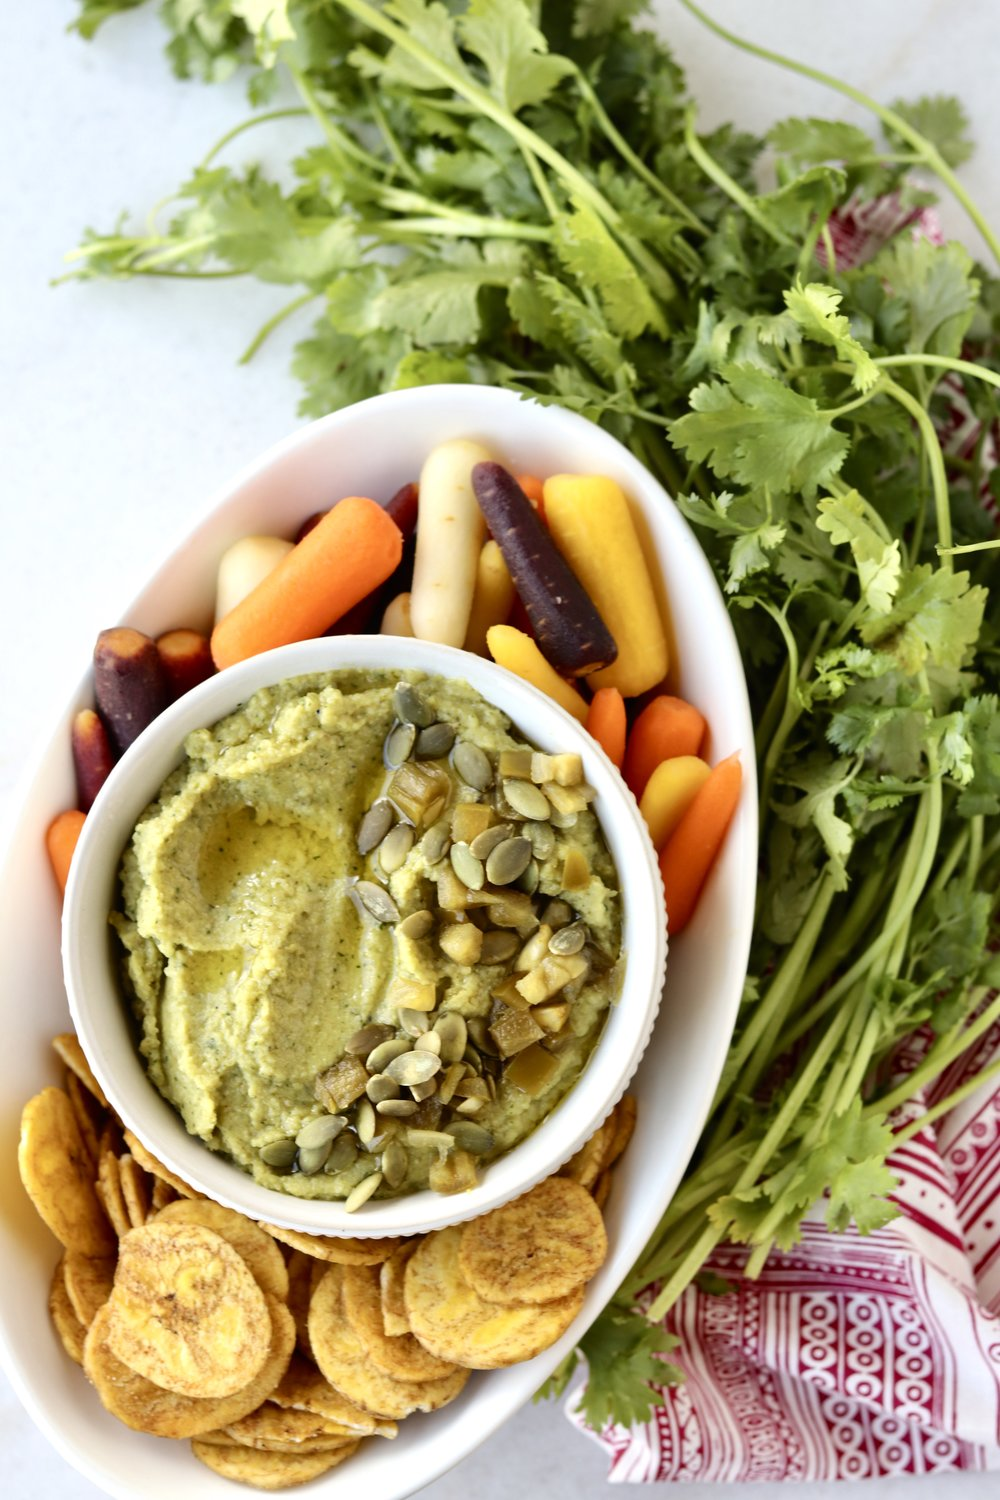 Spicy Cauliflower Dip by I'd Eat That Food